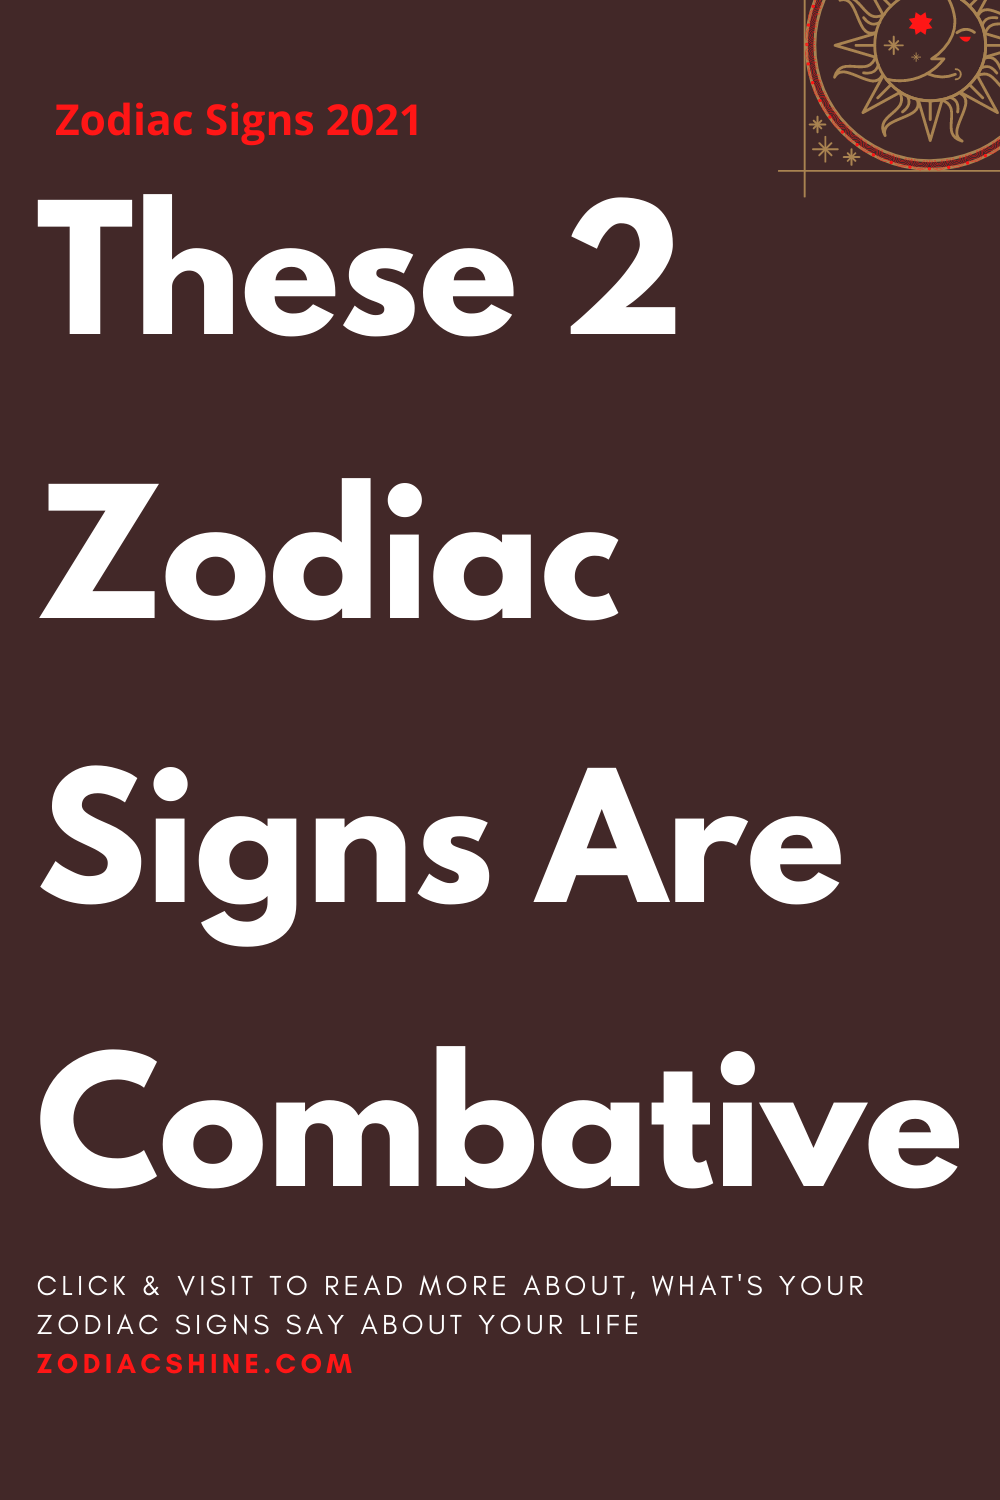 These 2 Zodiac Signs Are Combative